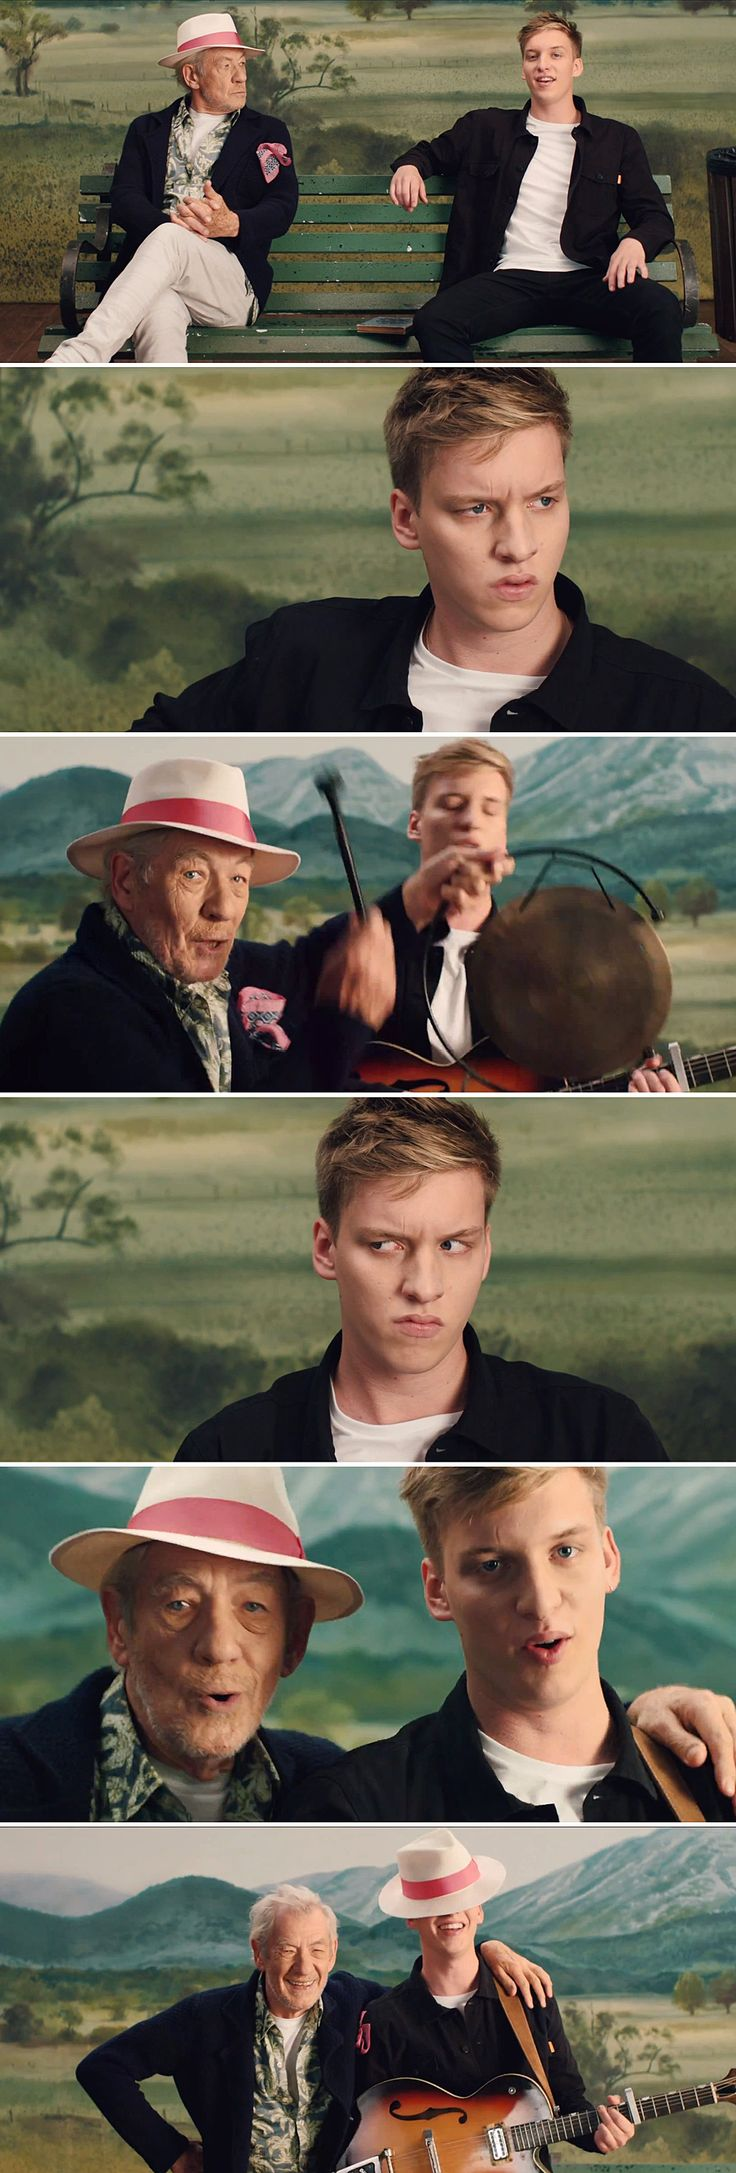 Lord Of The Rings & Hobbit screen legend #SirIanMcKellen appears in #GeorgeEzra's video for his new single #ListenToTheMan. With some pretty brilliant lip-synching and excellent dialogue, this video is absolutely charming! Watch it here : http://www.creation.com.es/george-ezra-listen-to-the-man/